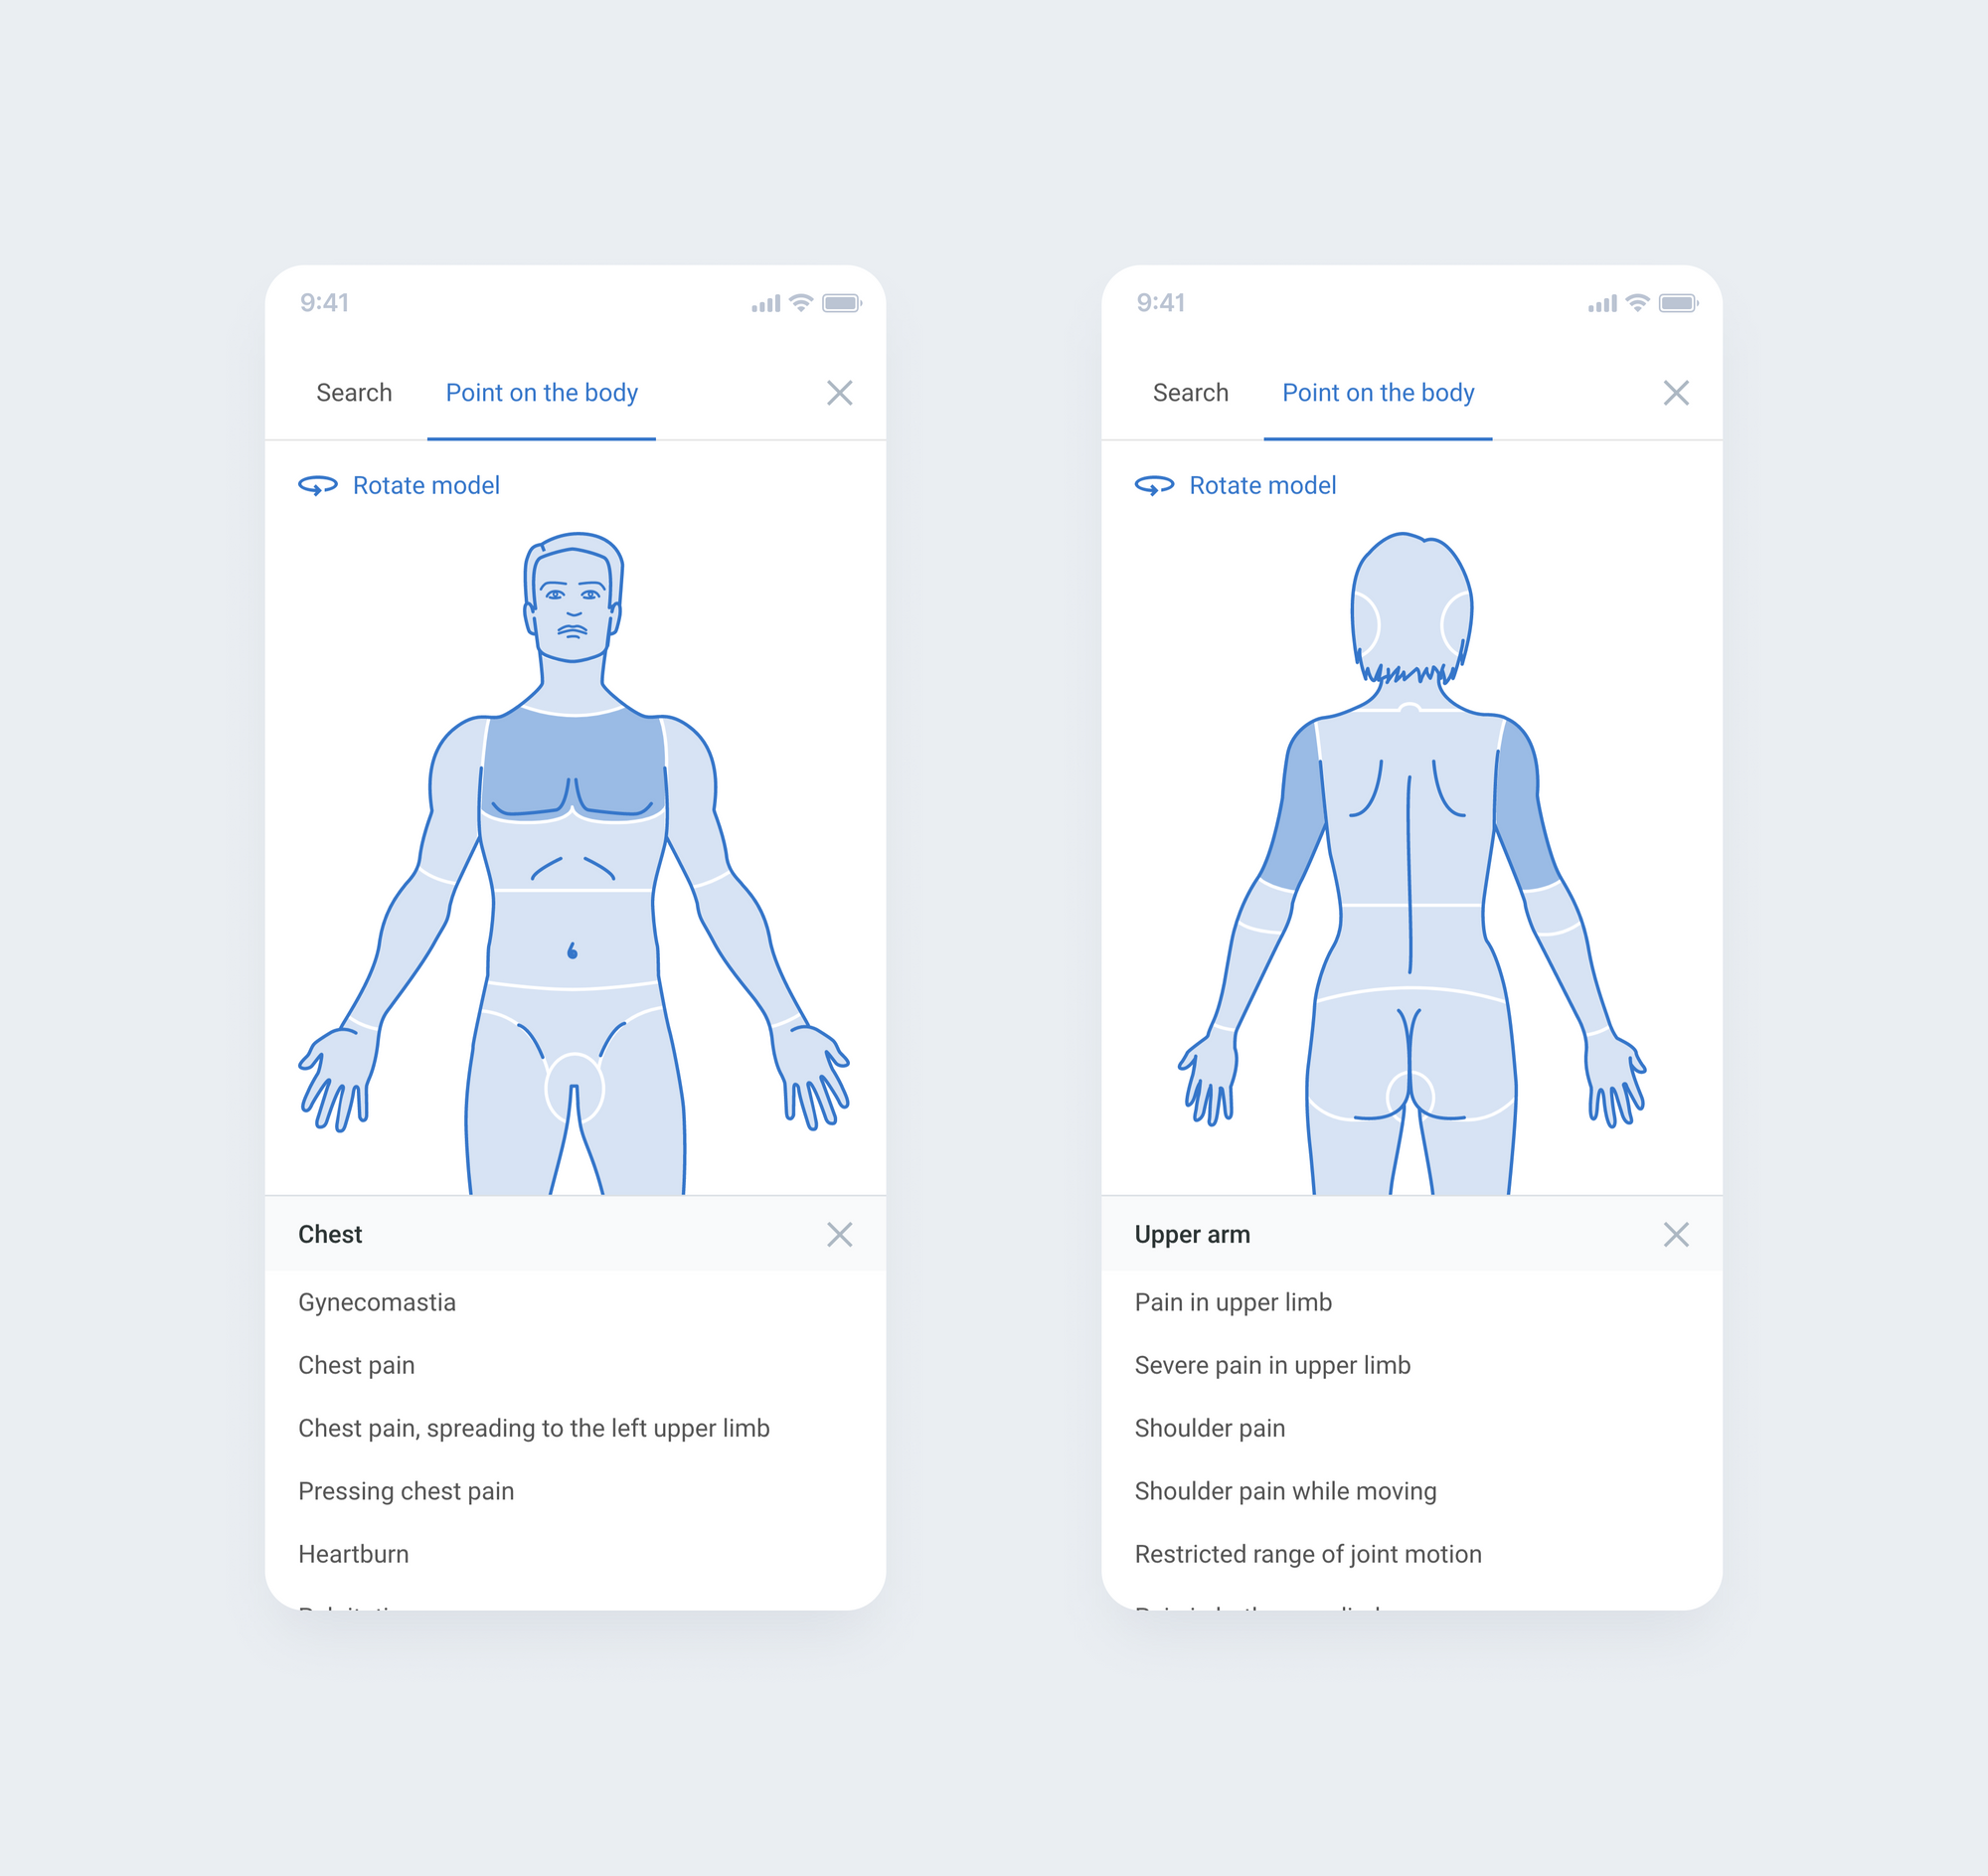 Example: A list of symptoms should be attached to the front and back of the body.